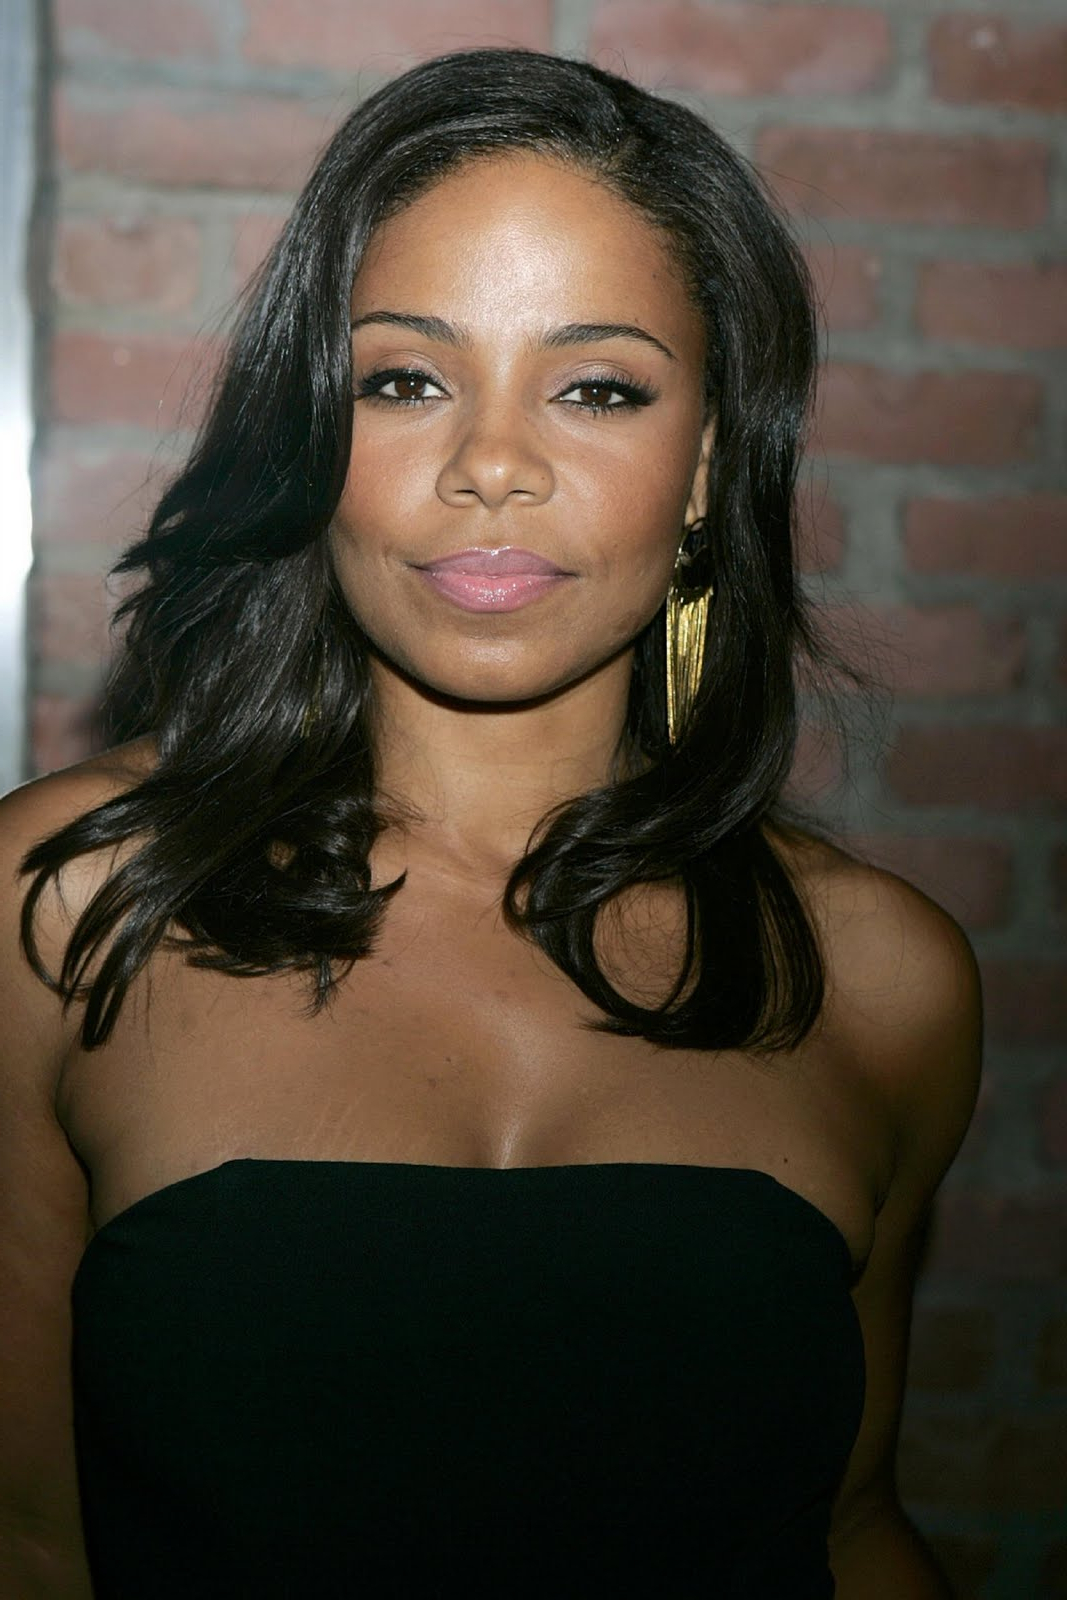 Hairstylo Throughout Favorite Medium Hairstyles For African American Women With Thin Hair (View 7 of 20)